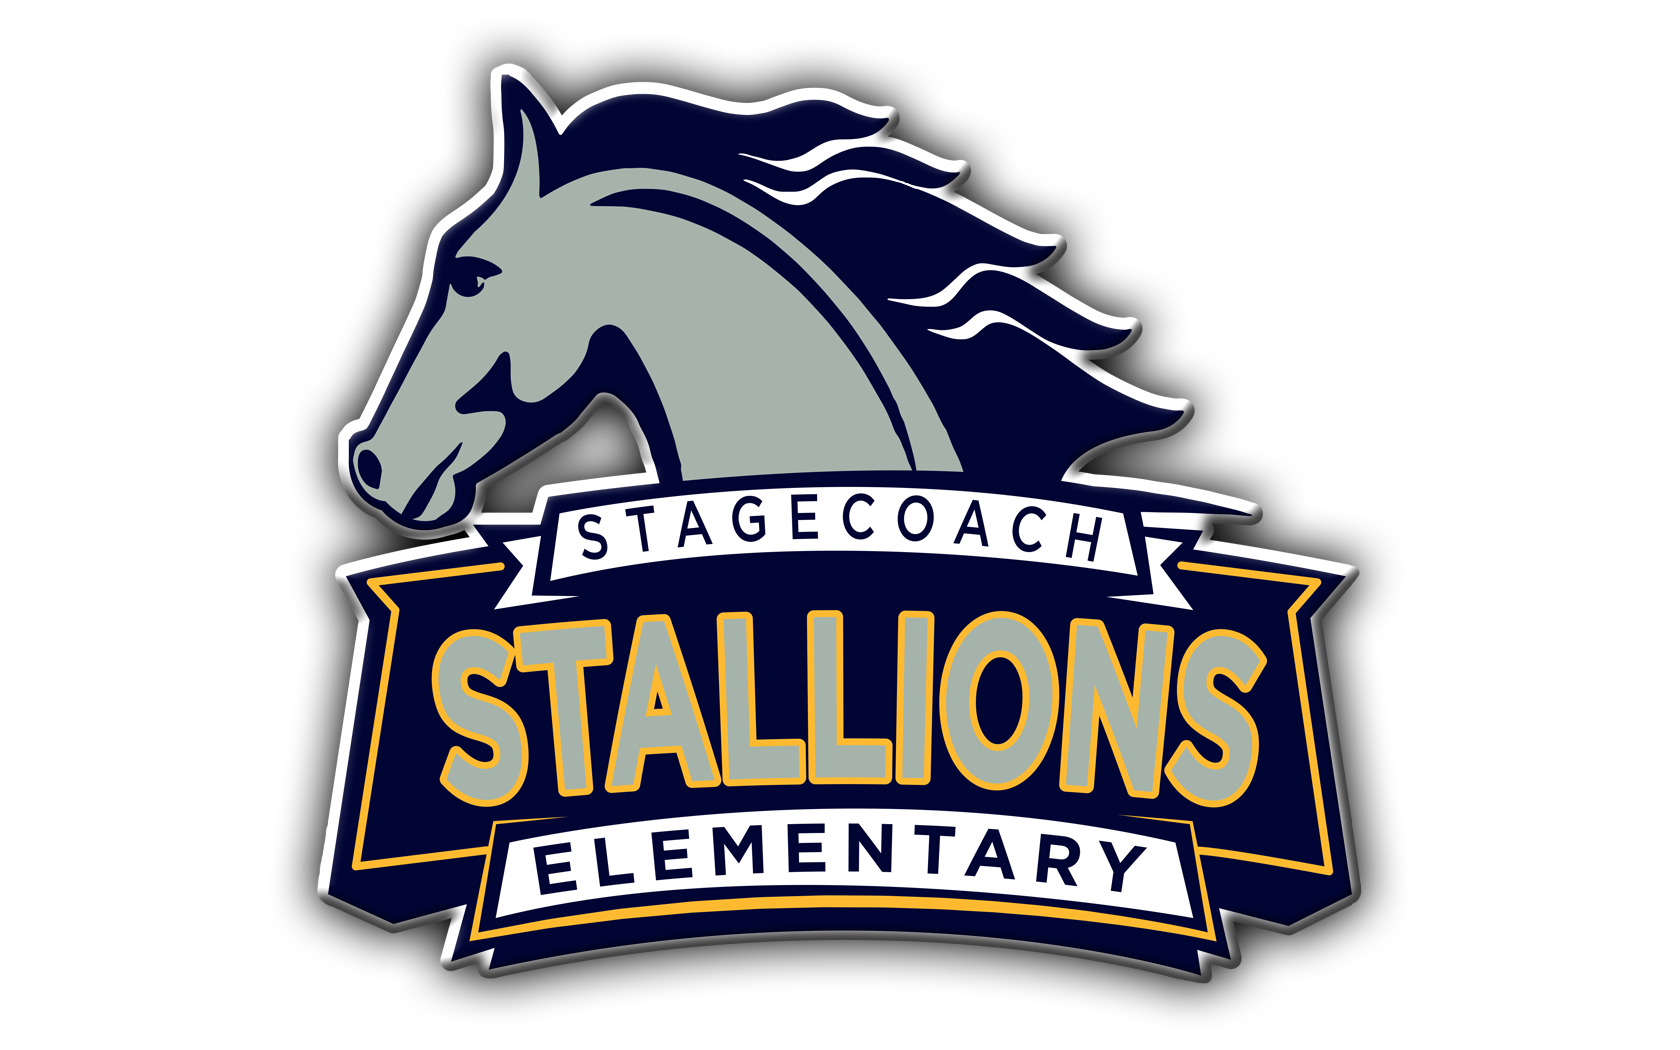 Stagecoach Elementary Home Page